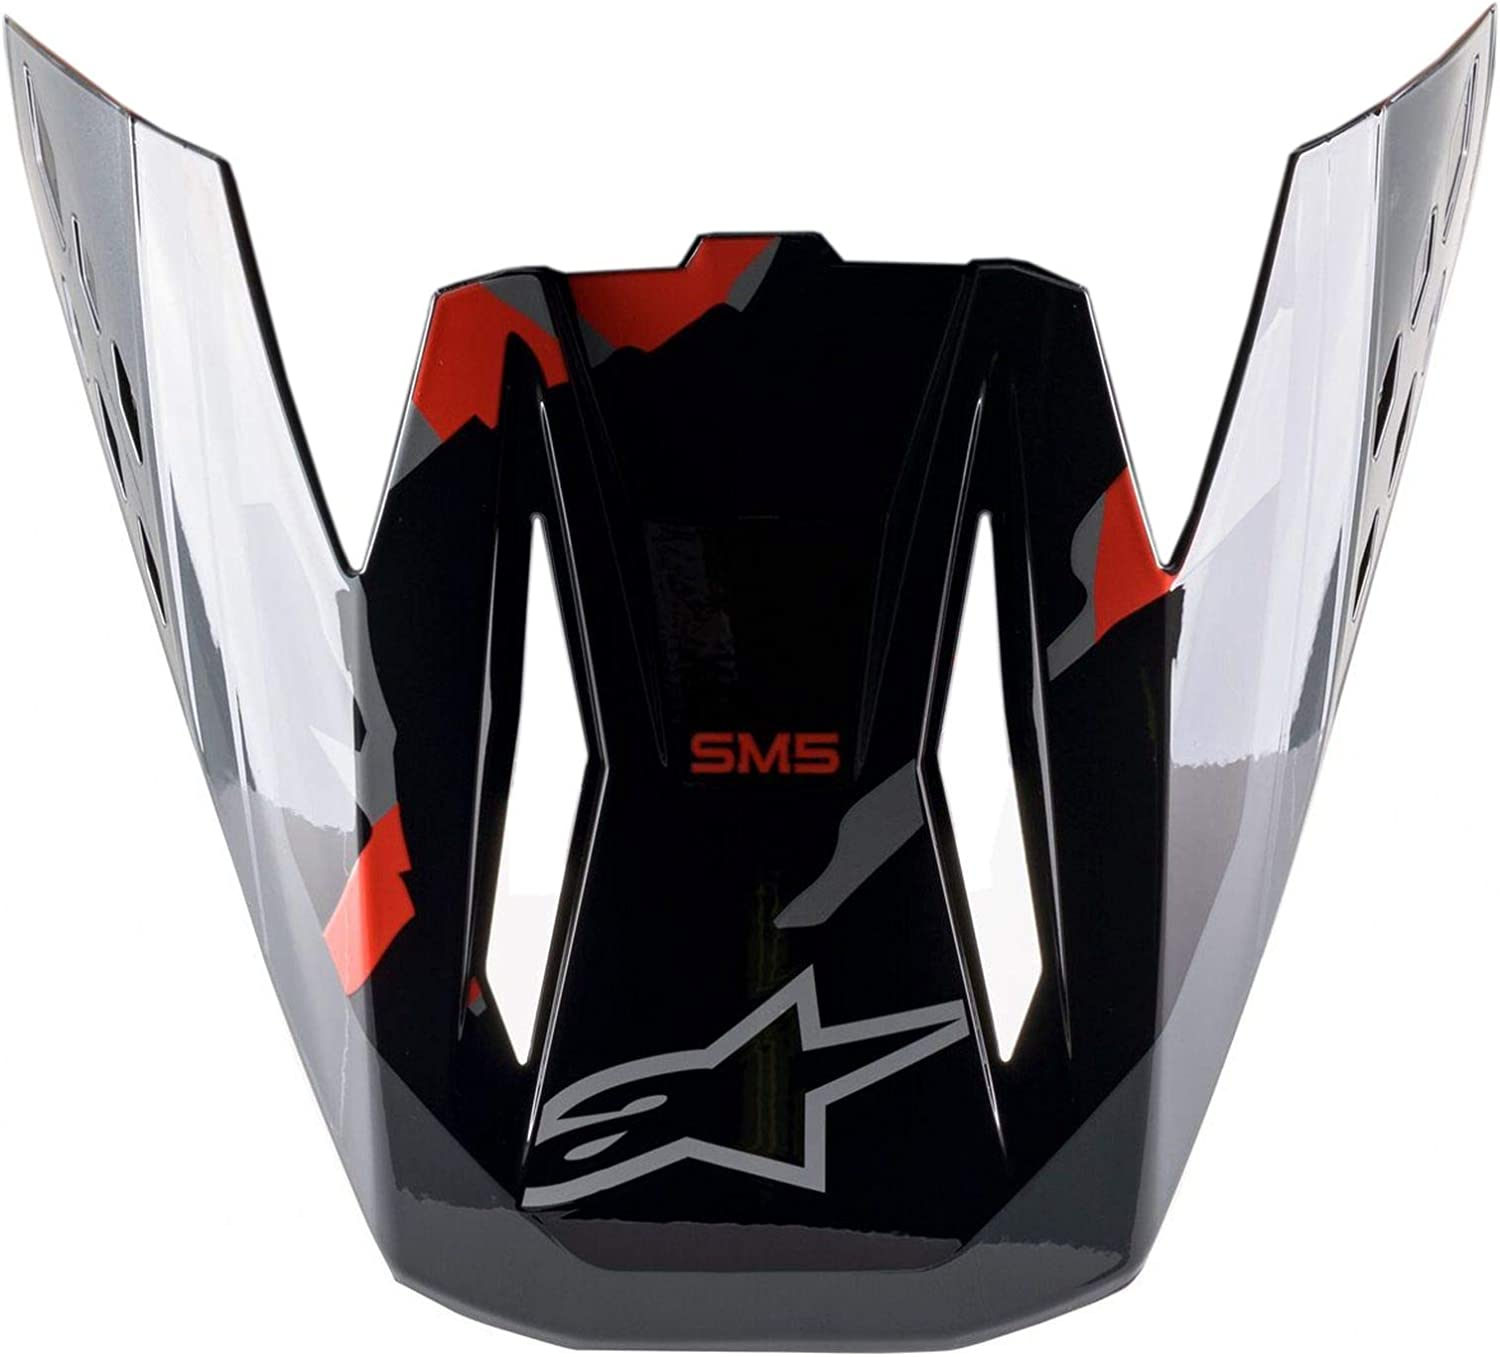 Alpinestars Unisex-Adult Visor New products world's highest quality popular S-M5-Rover Mul Red Fluo Greycamo SEAL limited product